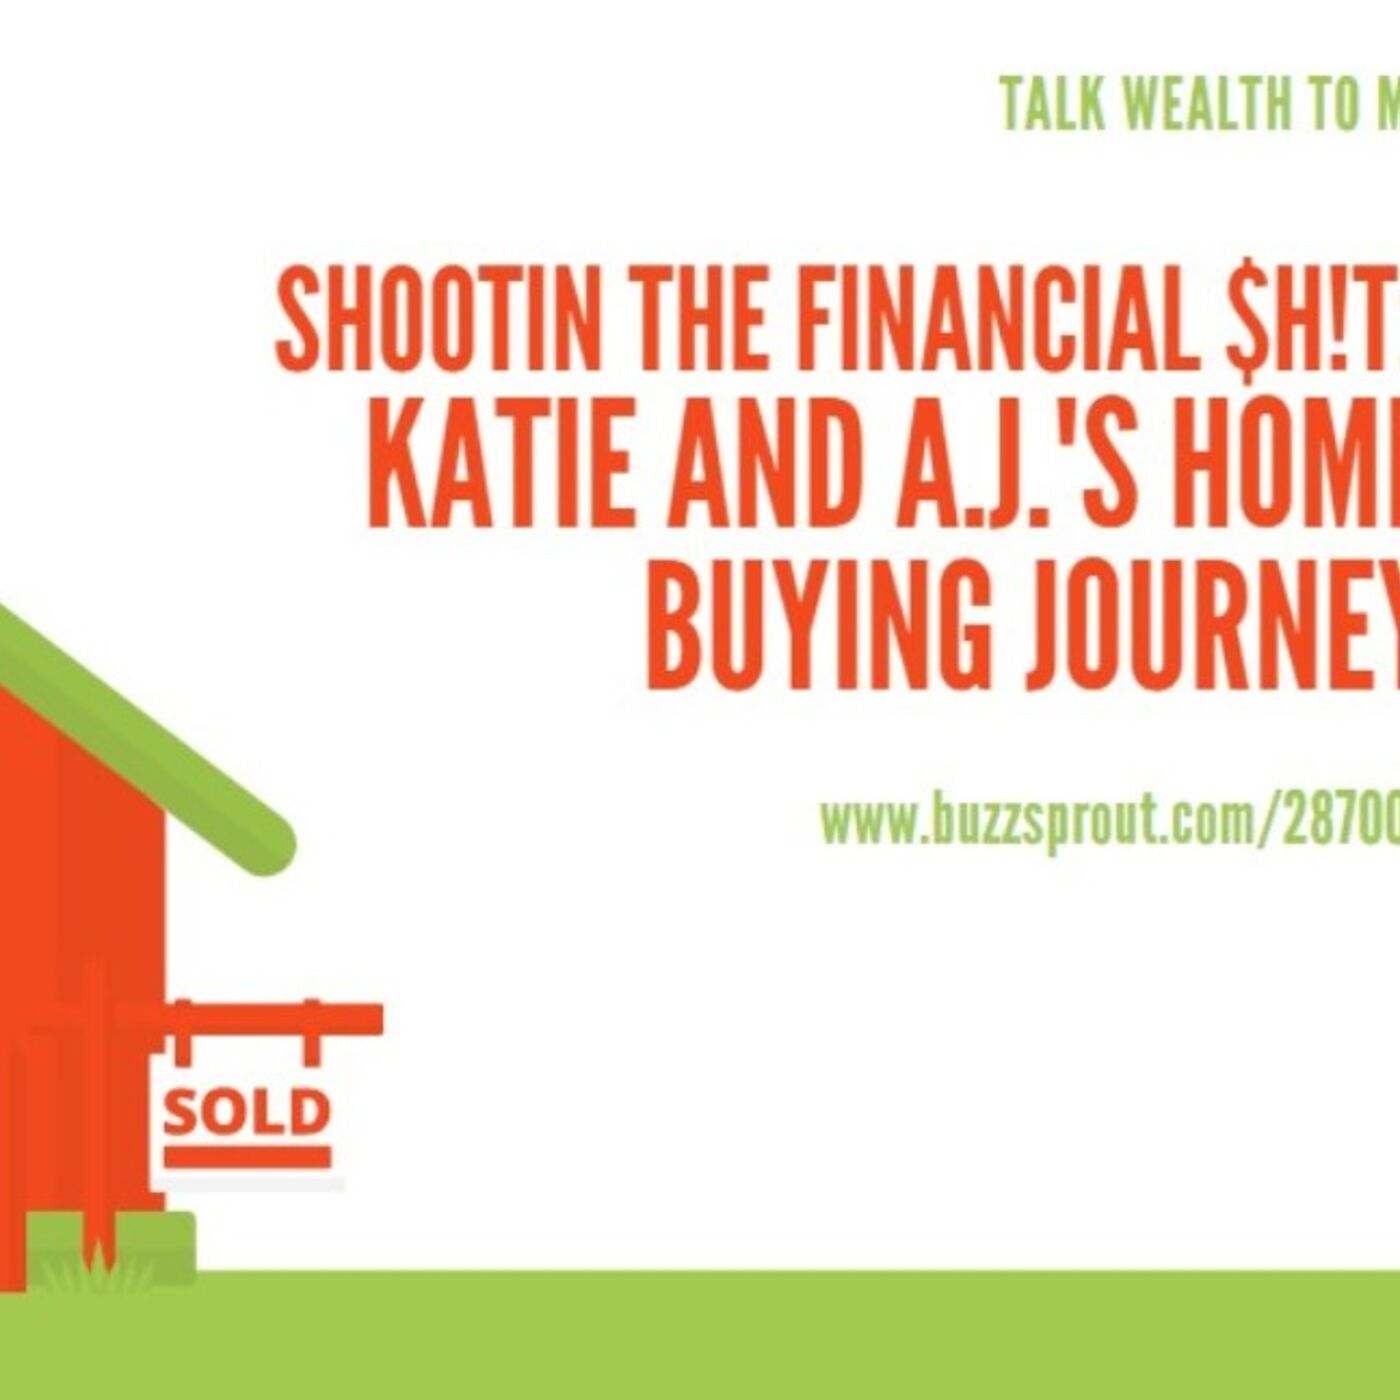 #084 Shootin The Financial $h!t: Katie and A.J.'s Home Buying Journey